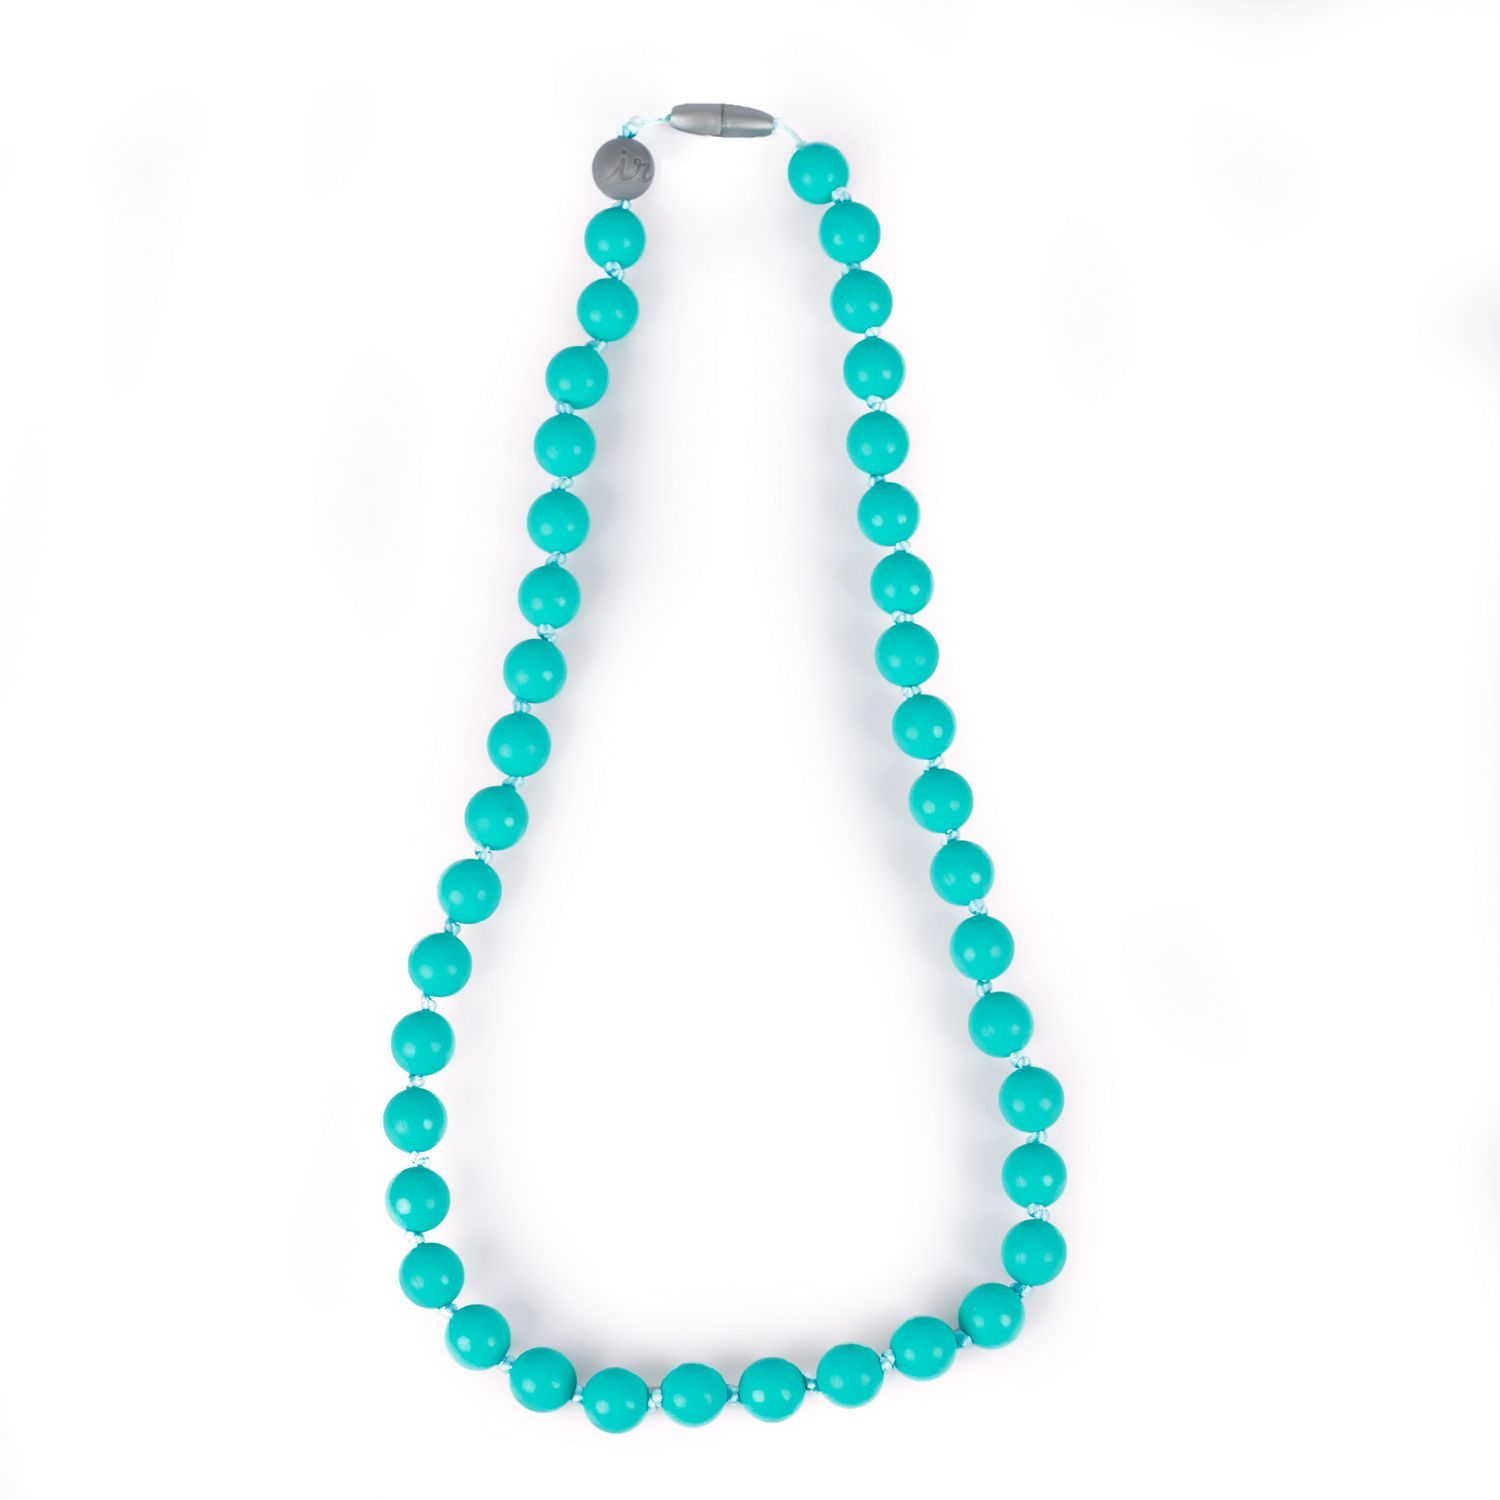 Itzy Ritzy Teething Happens Silicone Mom Jewelry Turquoise NEW Bracelet